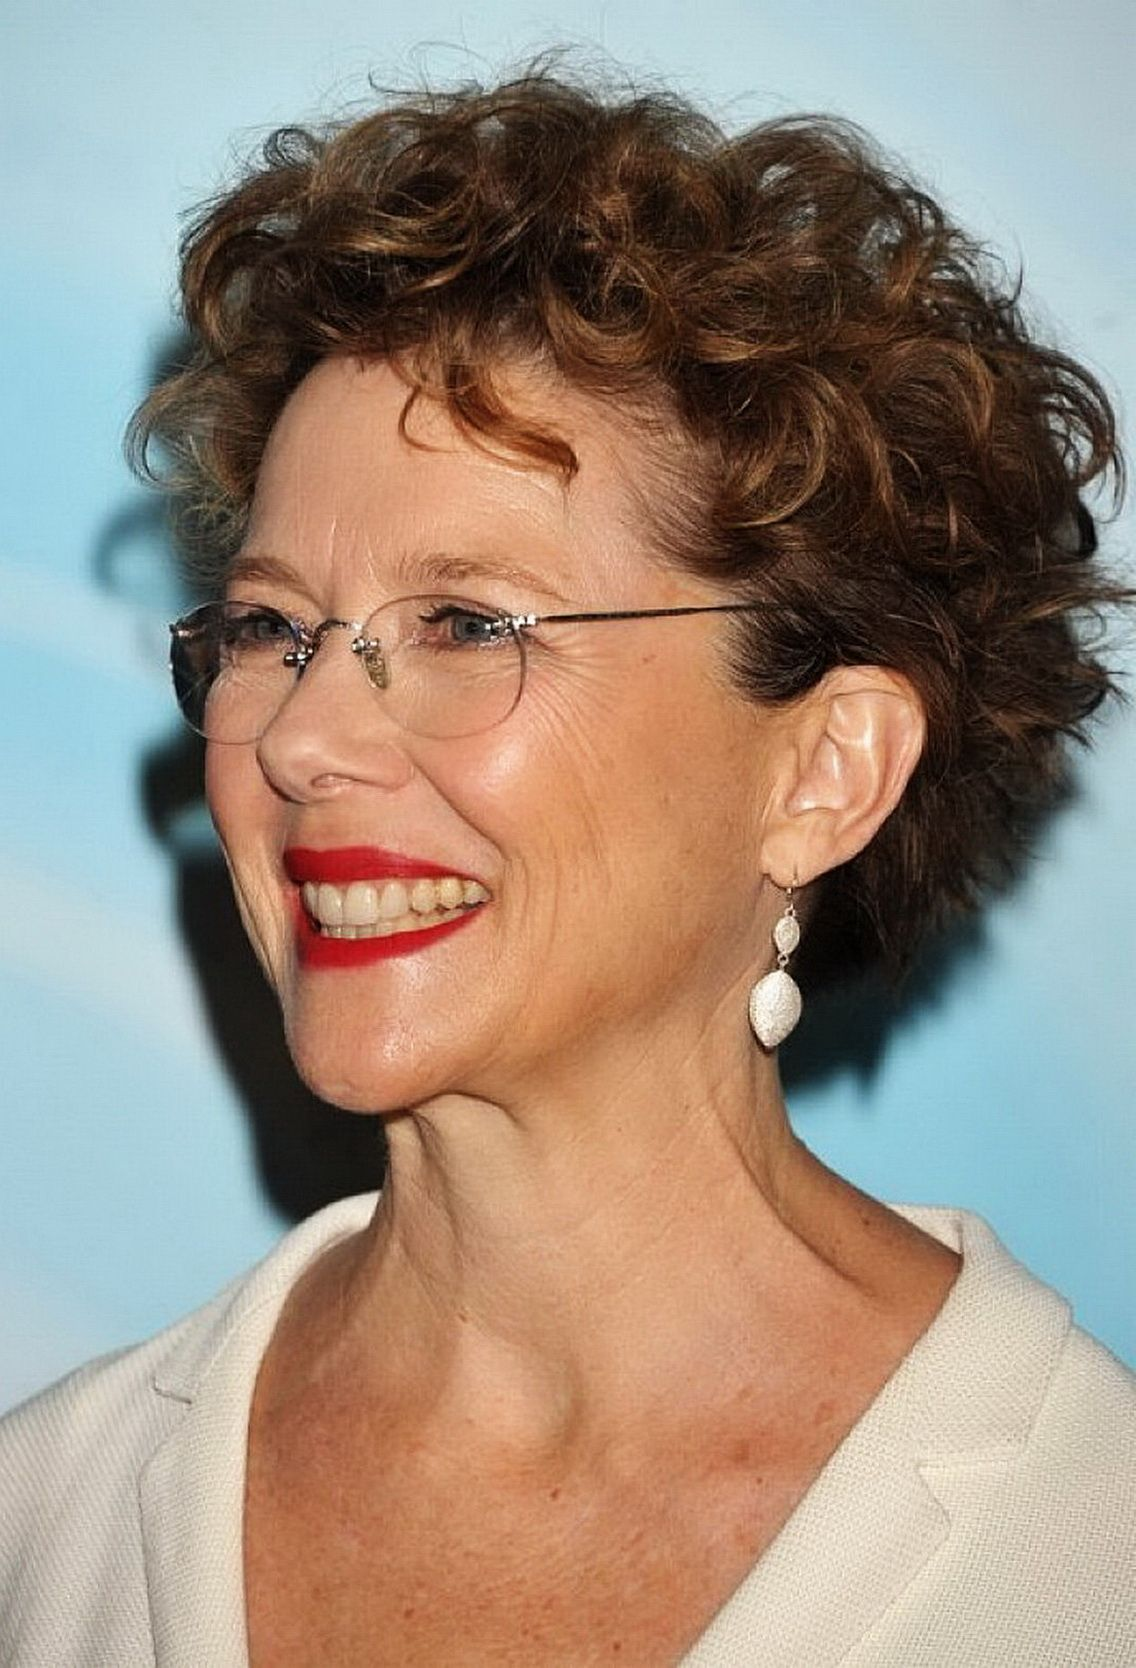 Short Hair Curly Hairstyles For Women Over  With Glasses Pics - Short hairstyles with curls